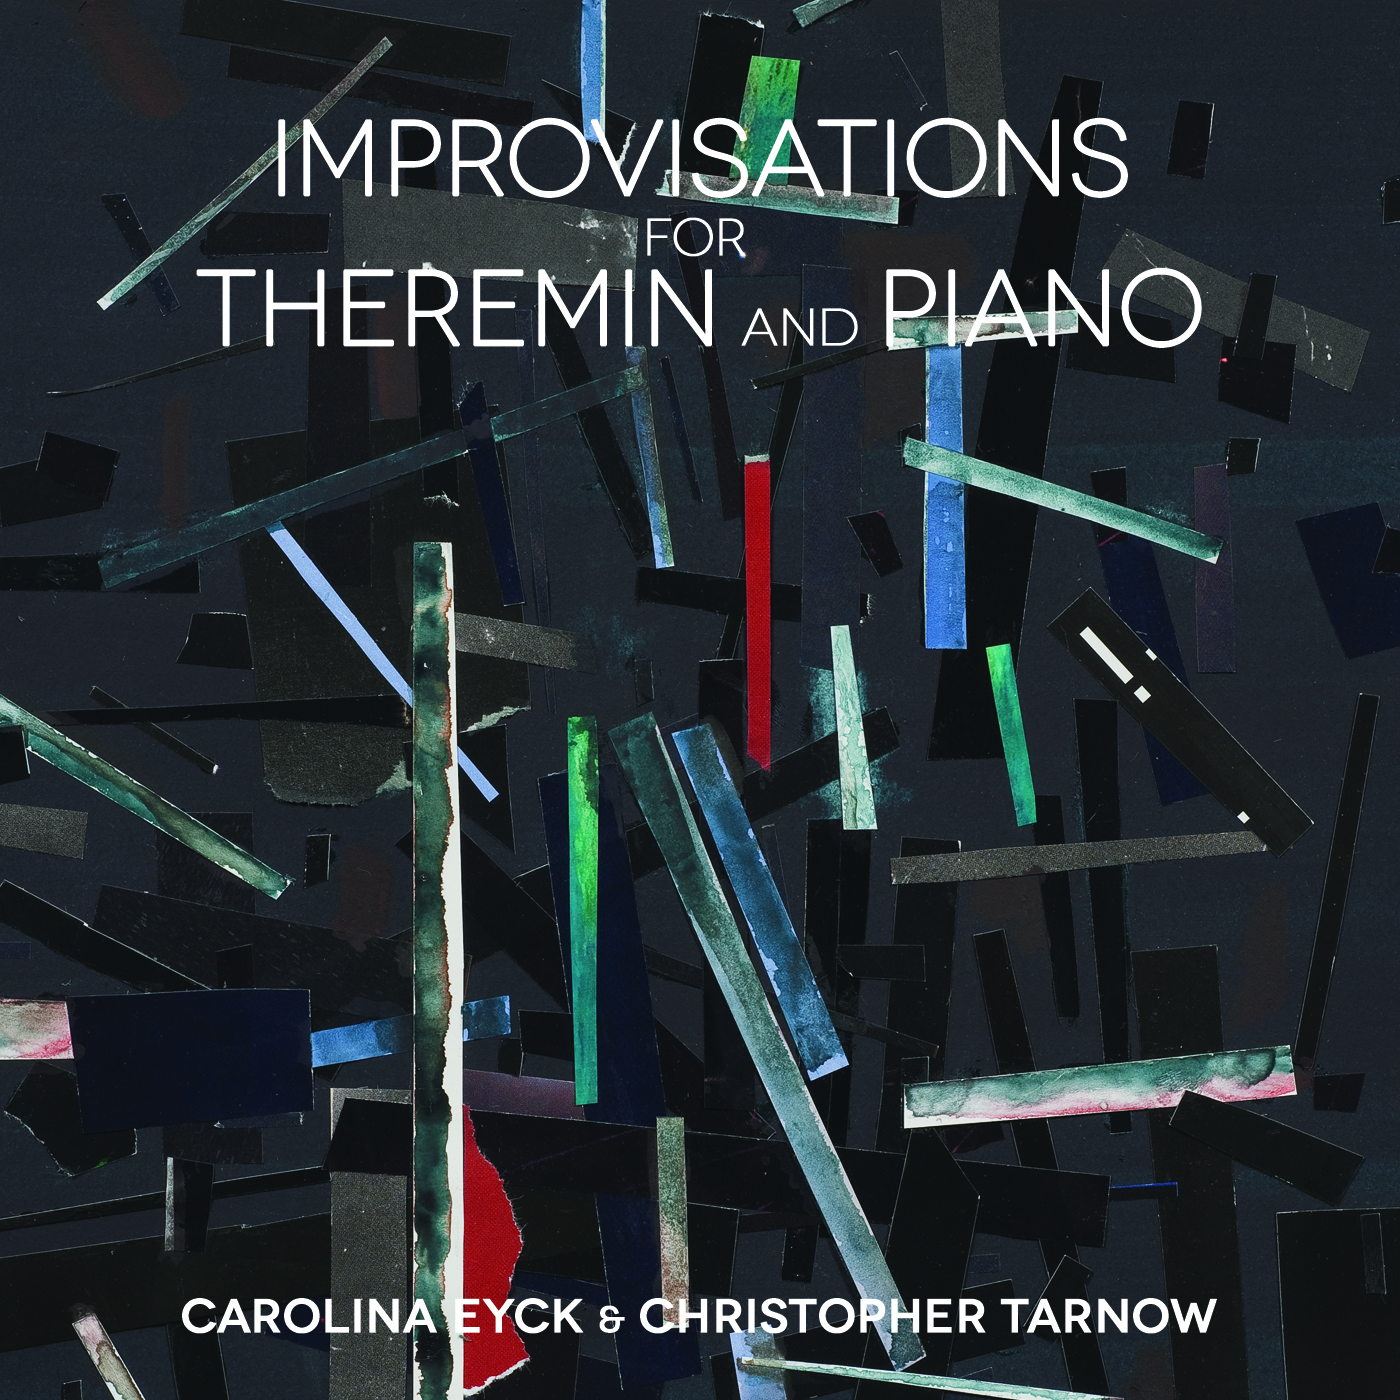 BSR010 Improvisations for Theremin and Piano - Cover 1400x1400px.jpg